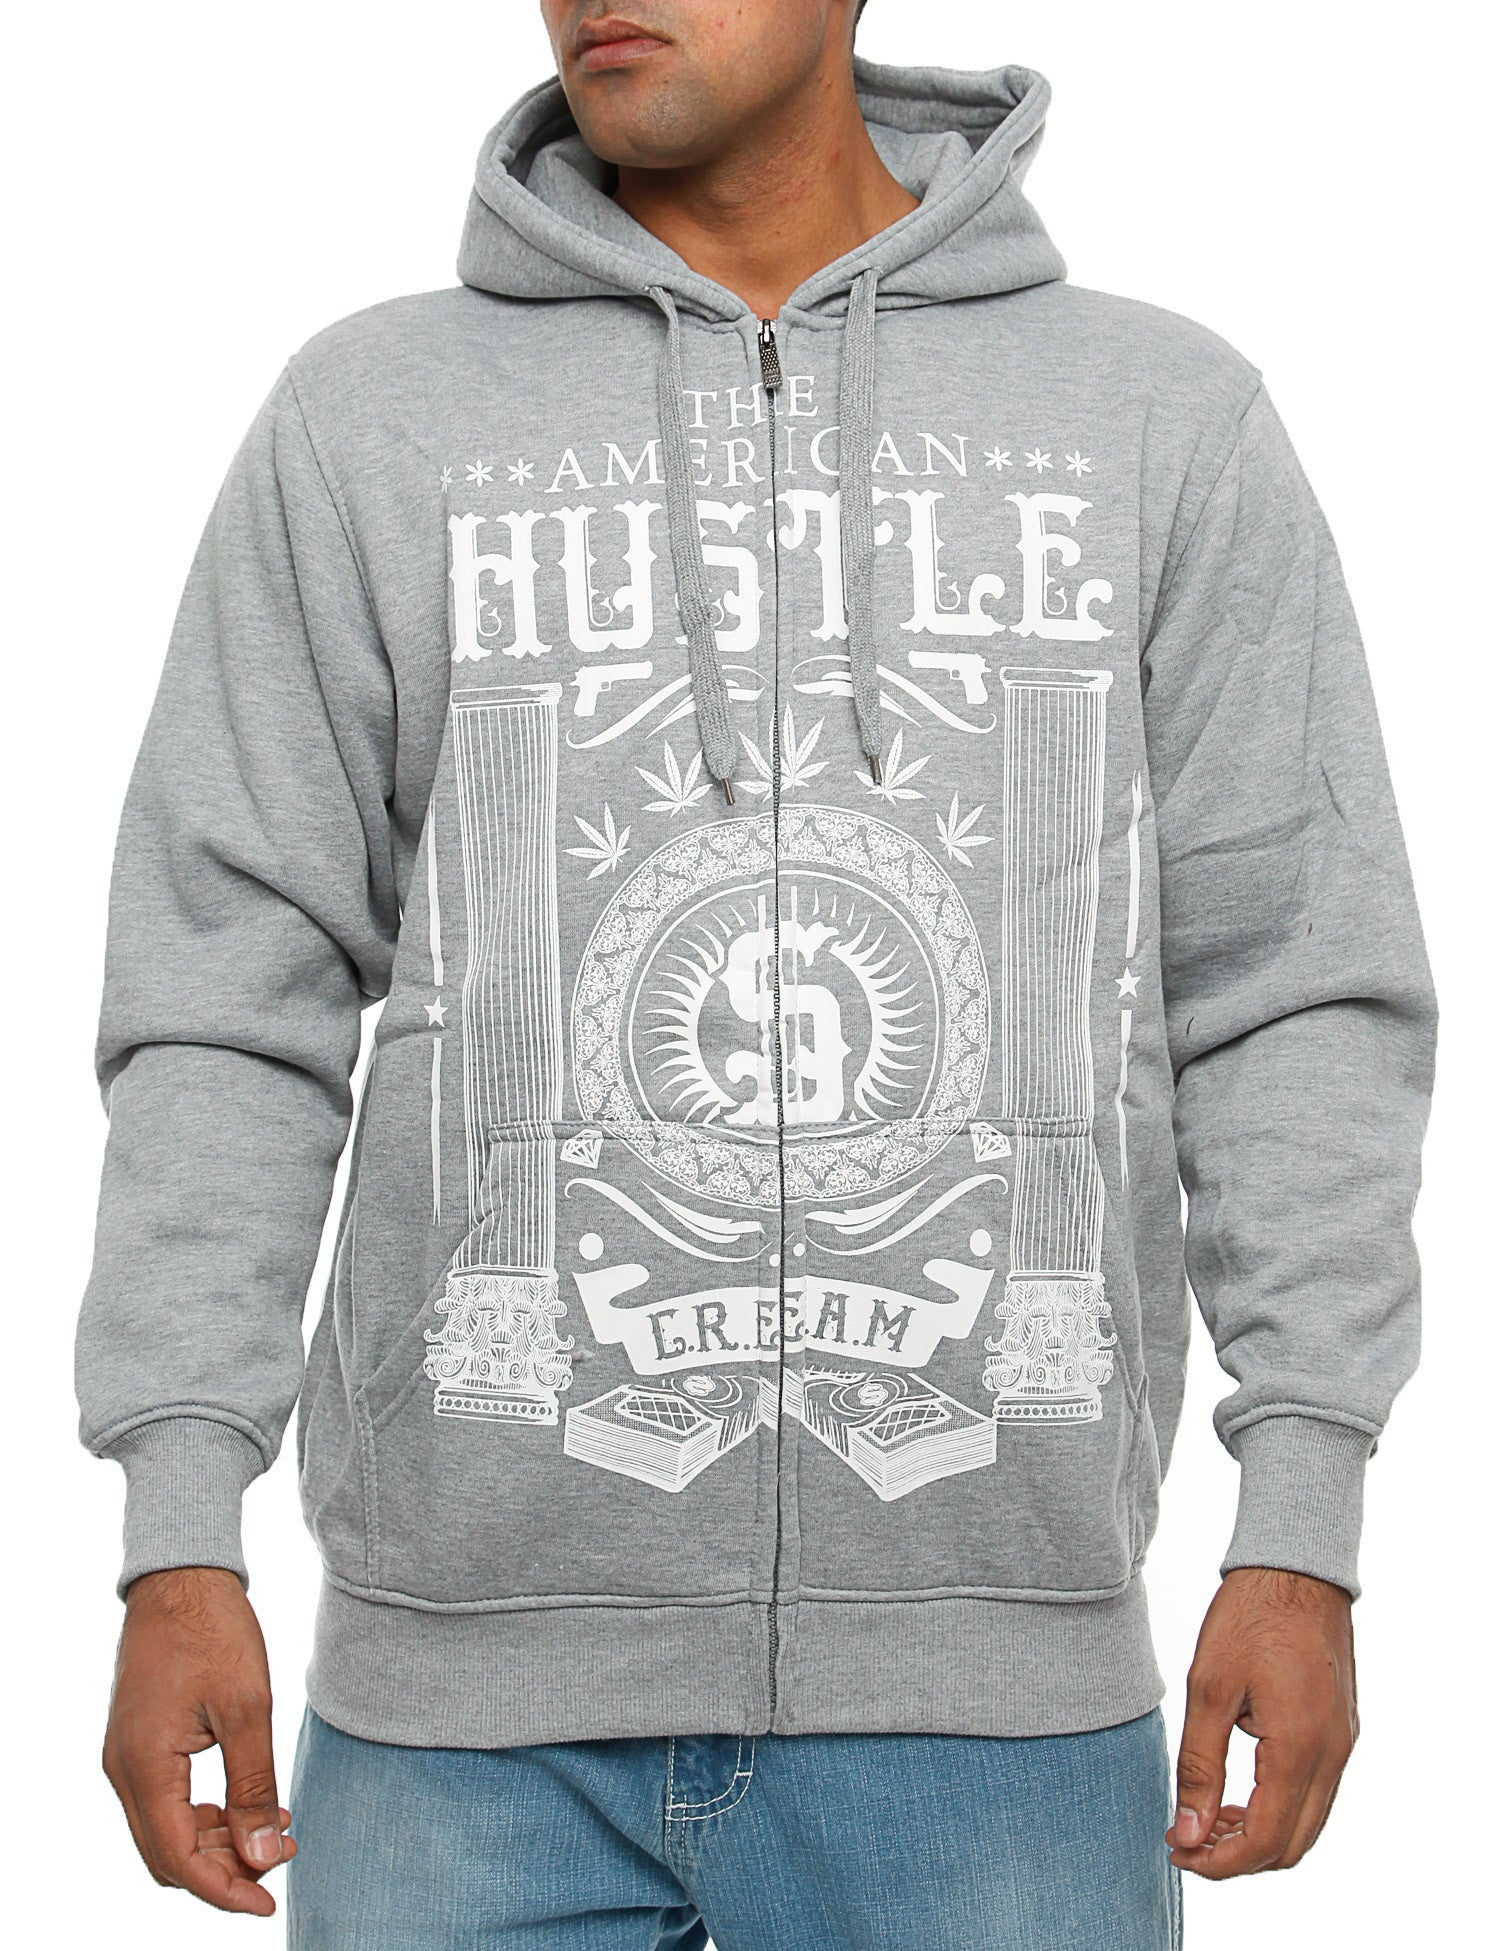 YLD ZHD-253B Zip Hoody Light Grey